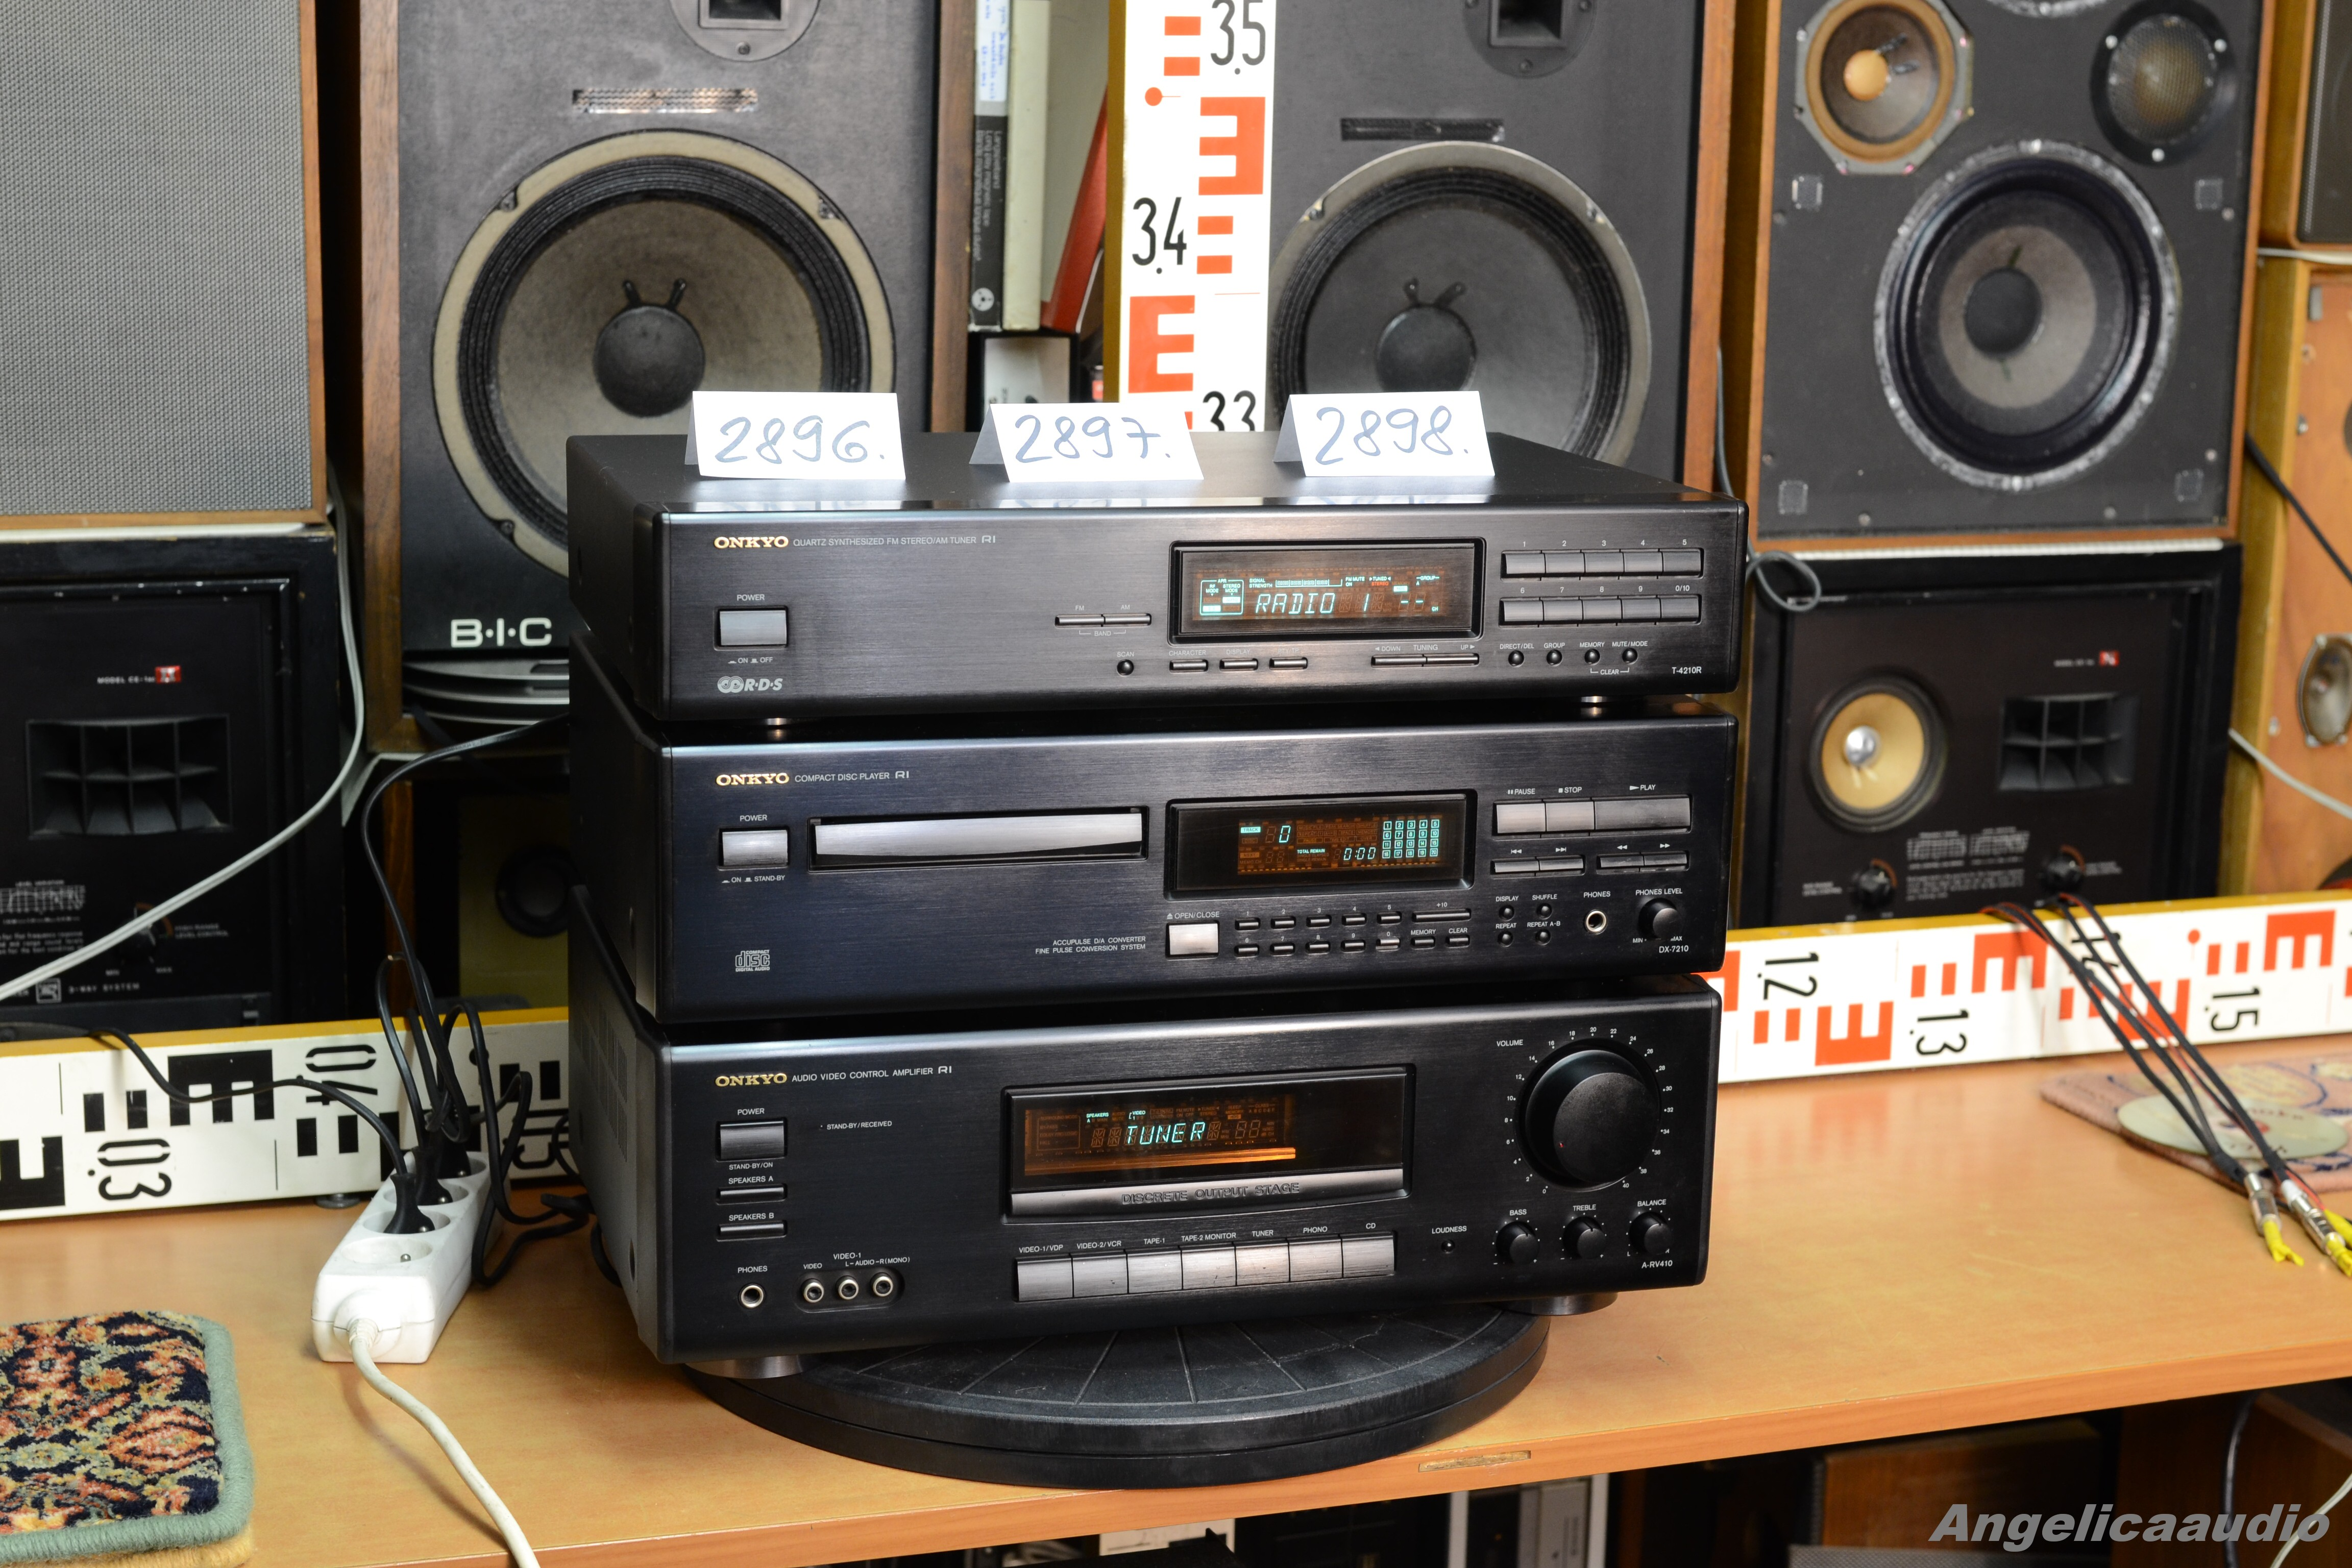 Onkyo R1 A Rv410 Amplifier R1 Dx 7210 Cd Player R1 T